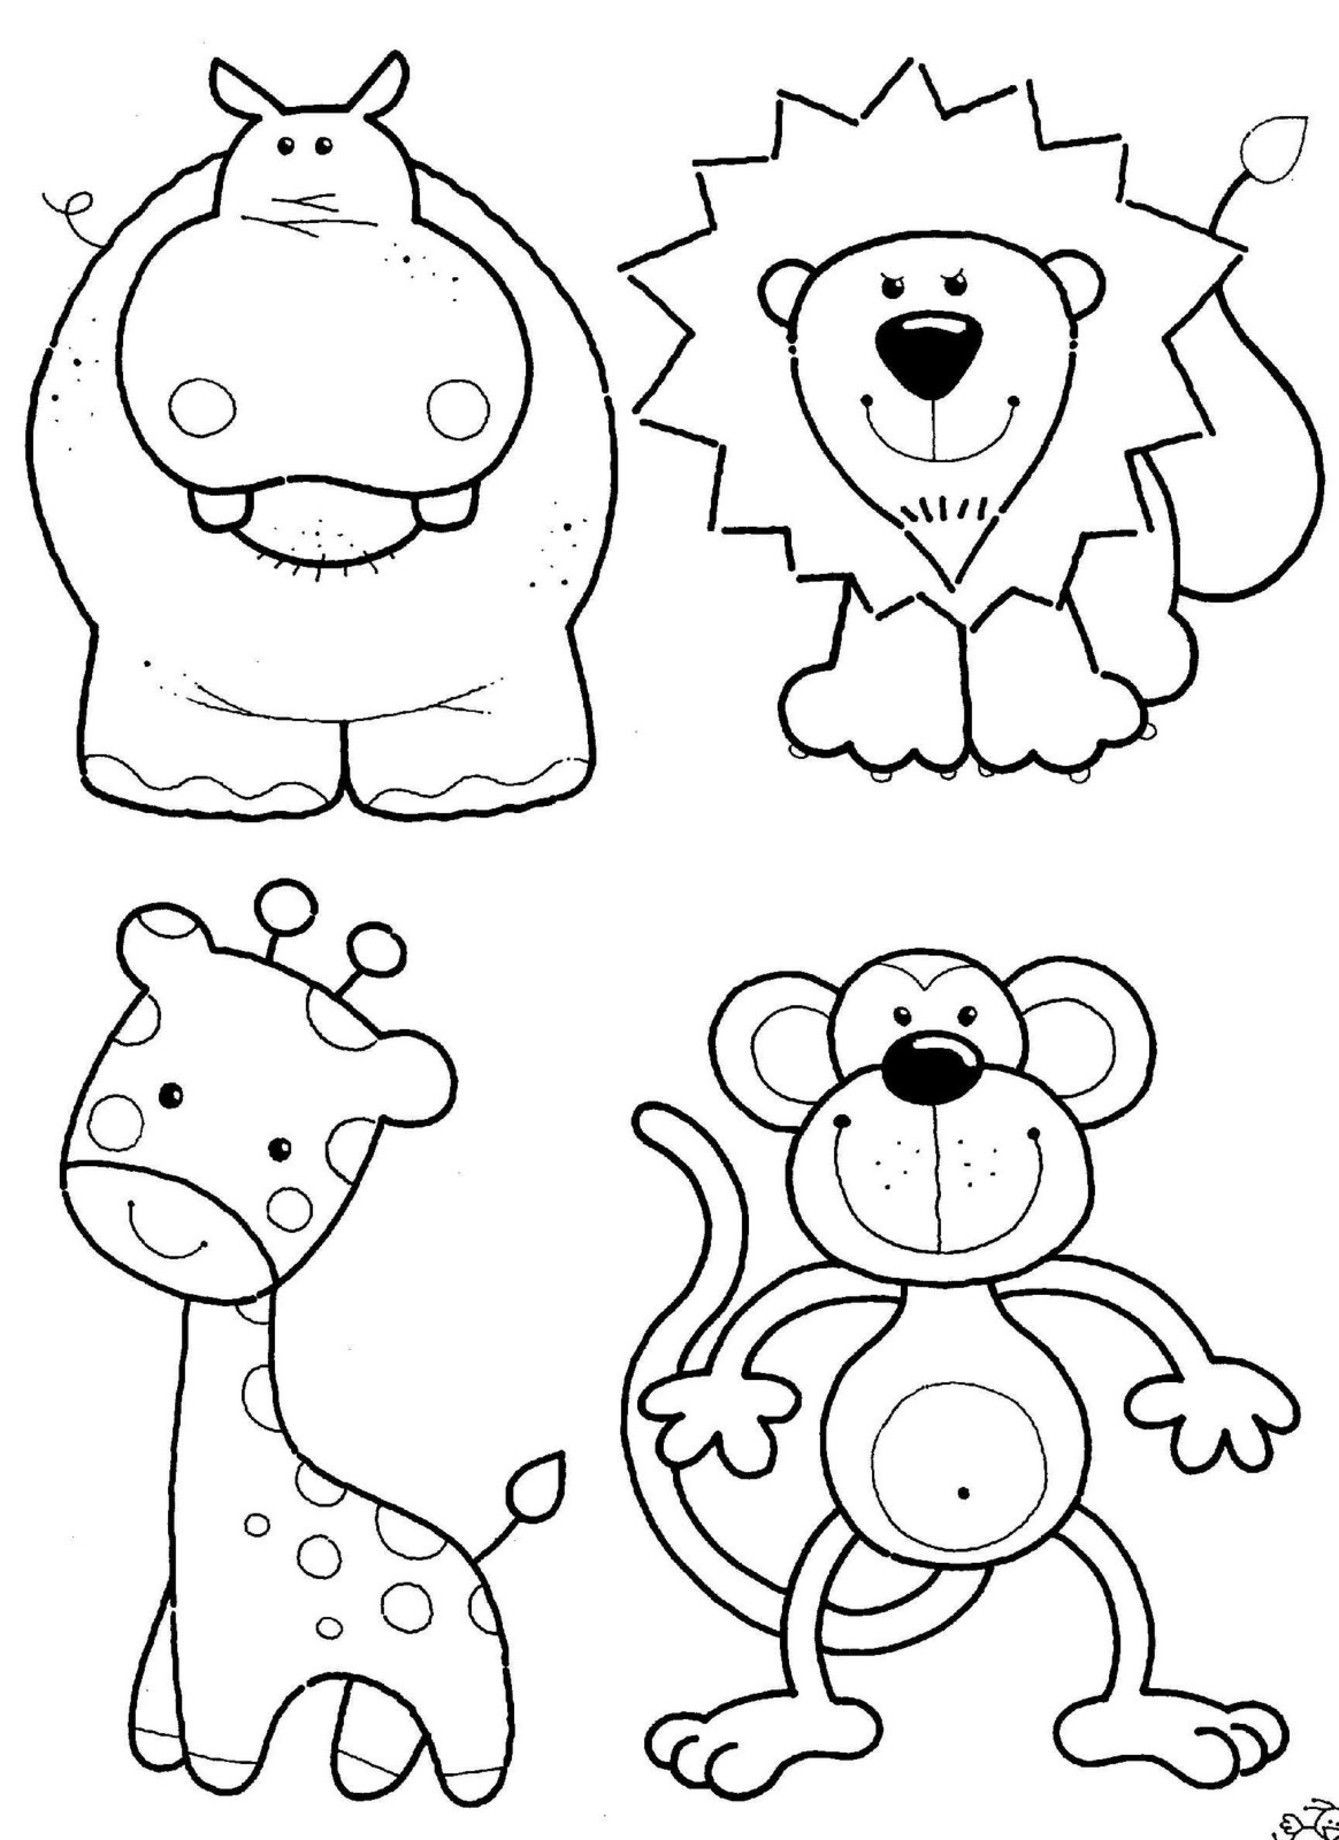 1339x1840 Crocodile Animals Coloring Pages For Kids Fresh Pinwheel Coloring